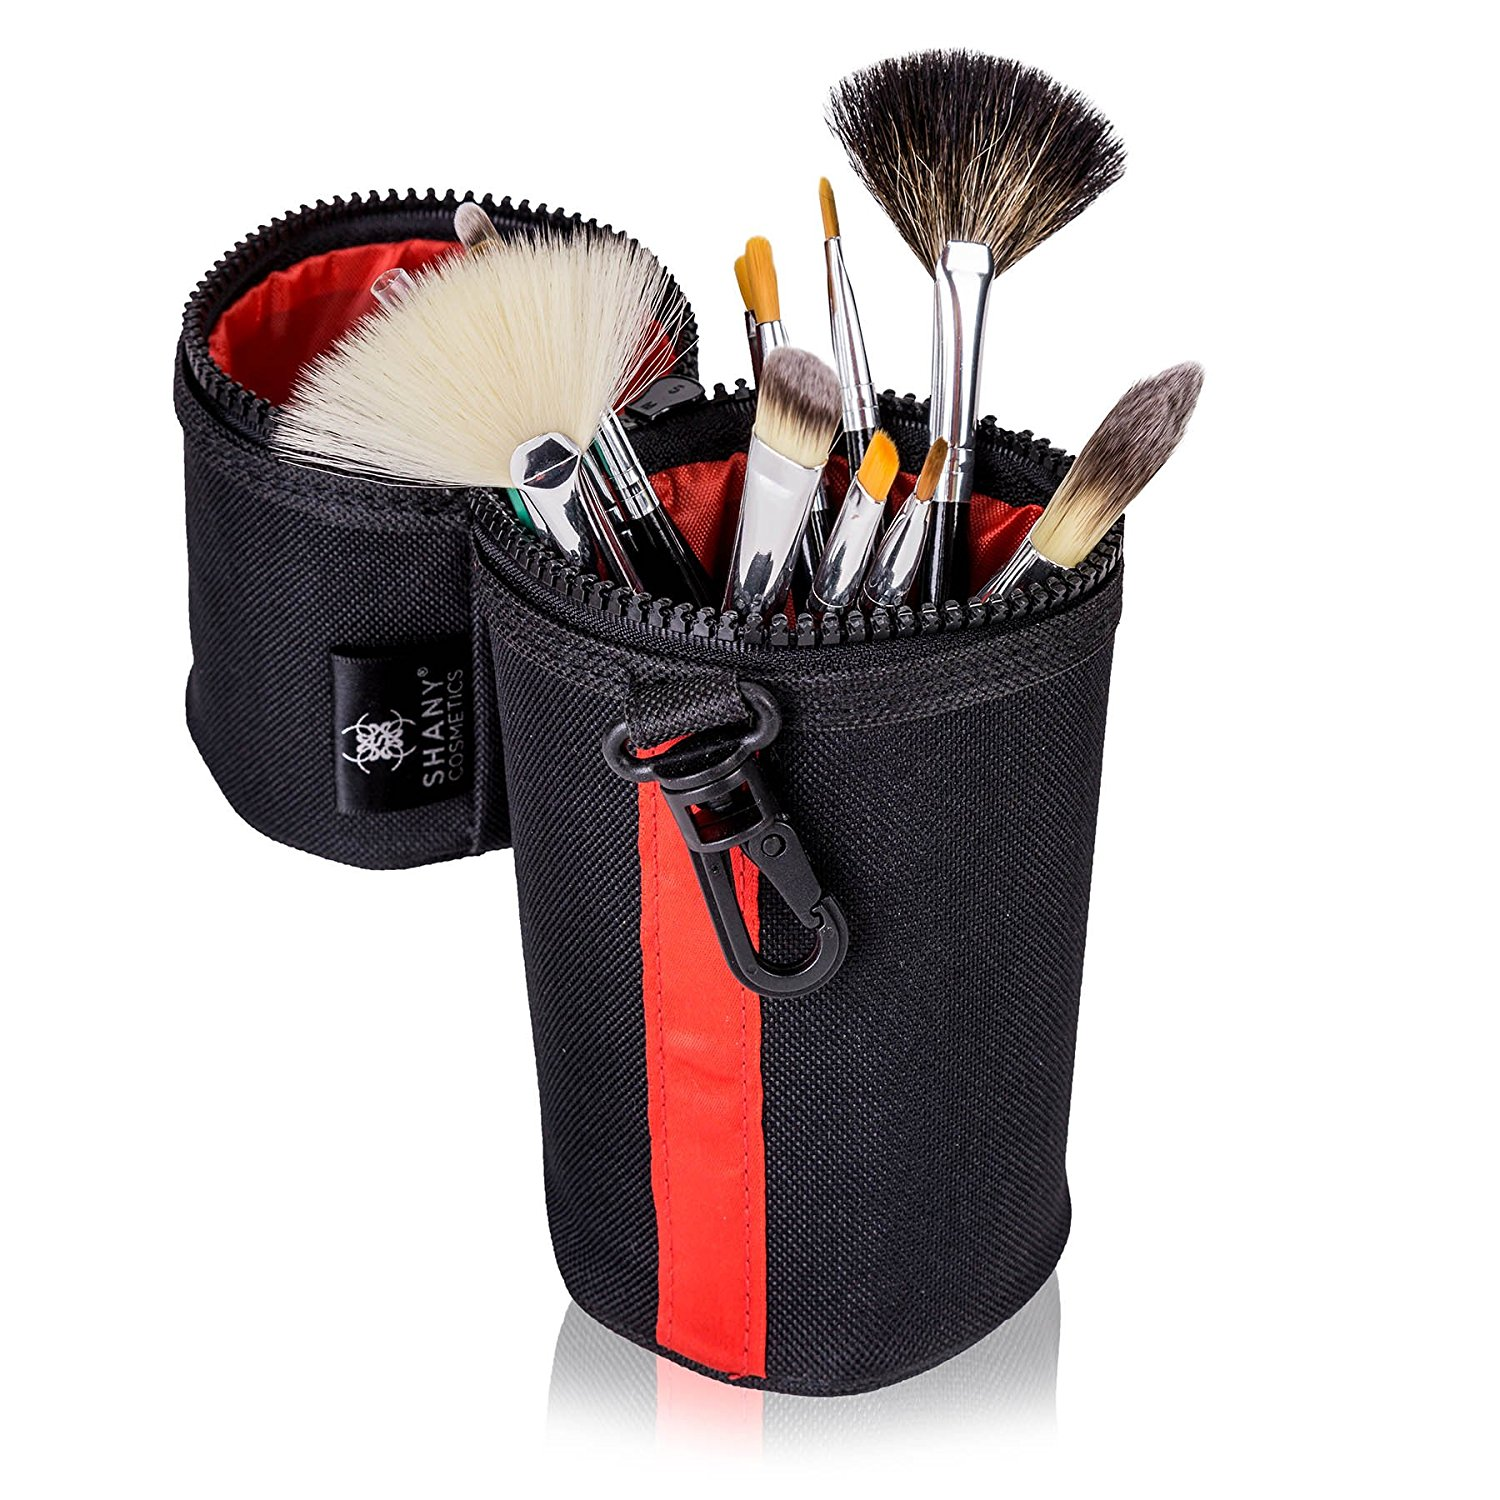 SHANY Cosmetics Urban Gal Collection Brush Kit (15 Piece Travel Brushes with Carry On Case), 13 Ounce